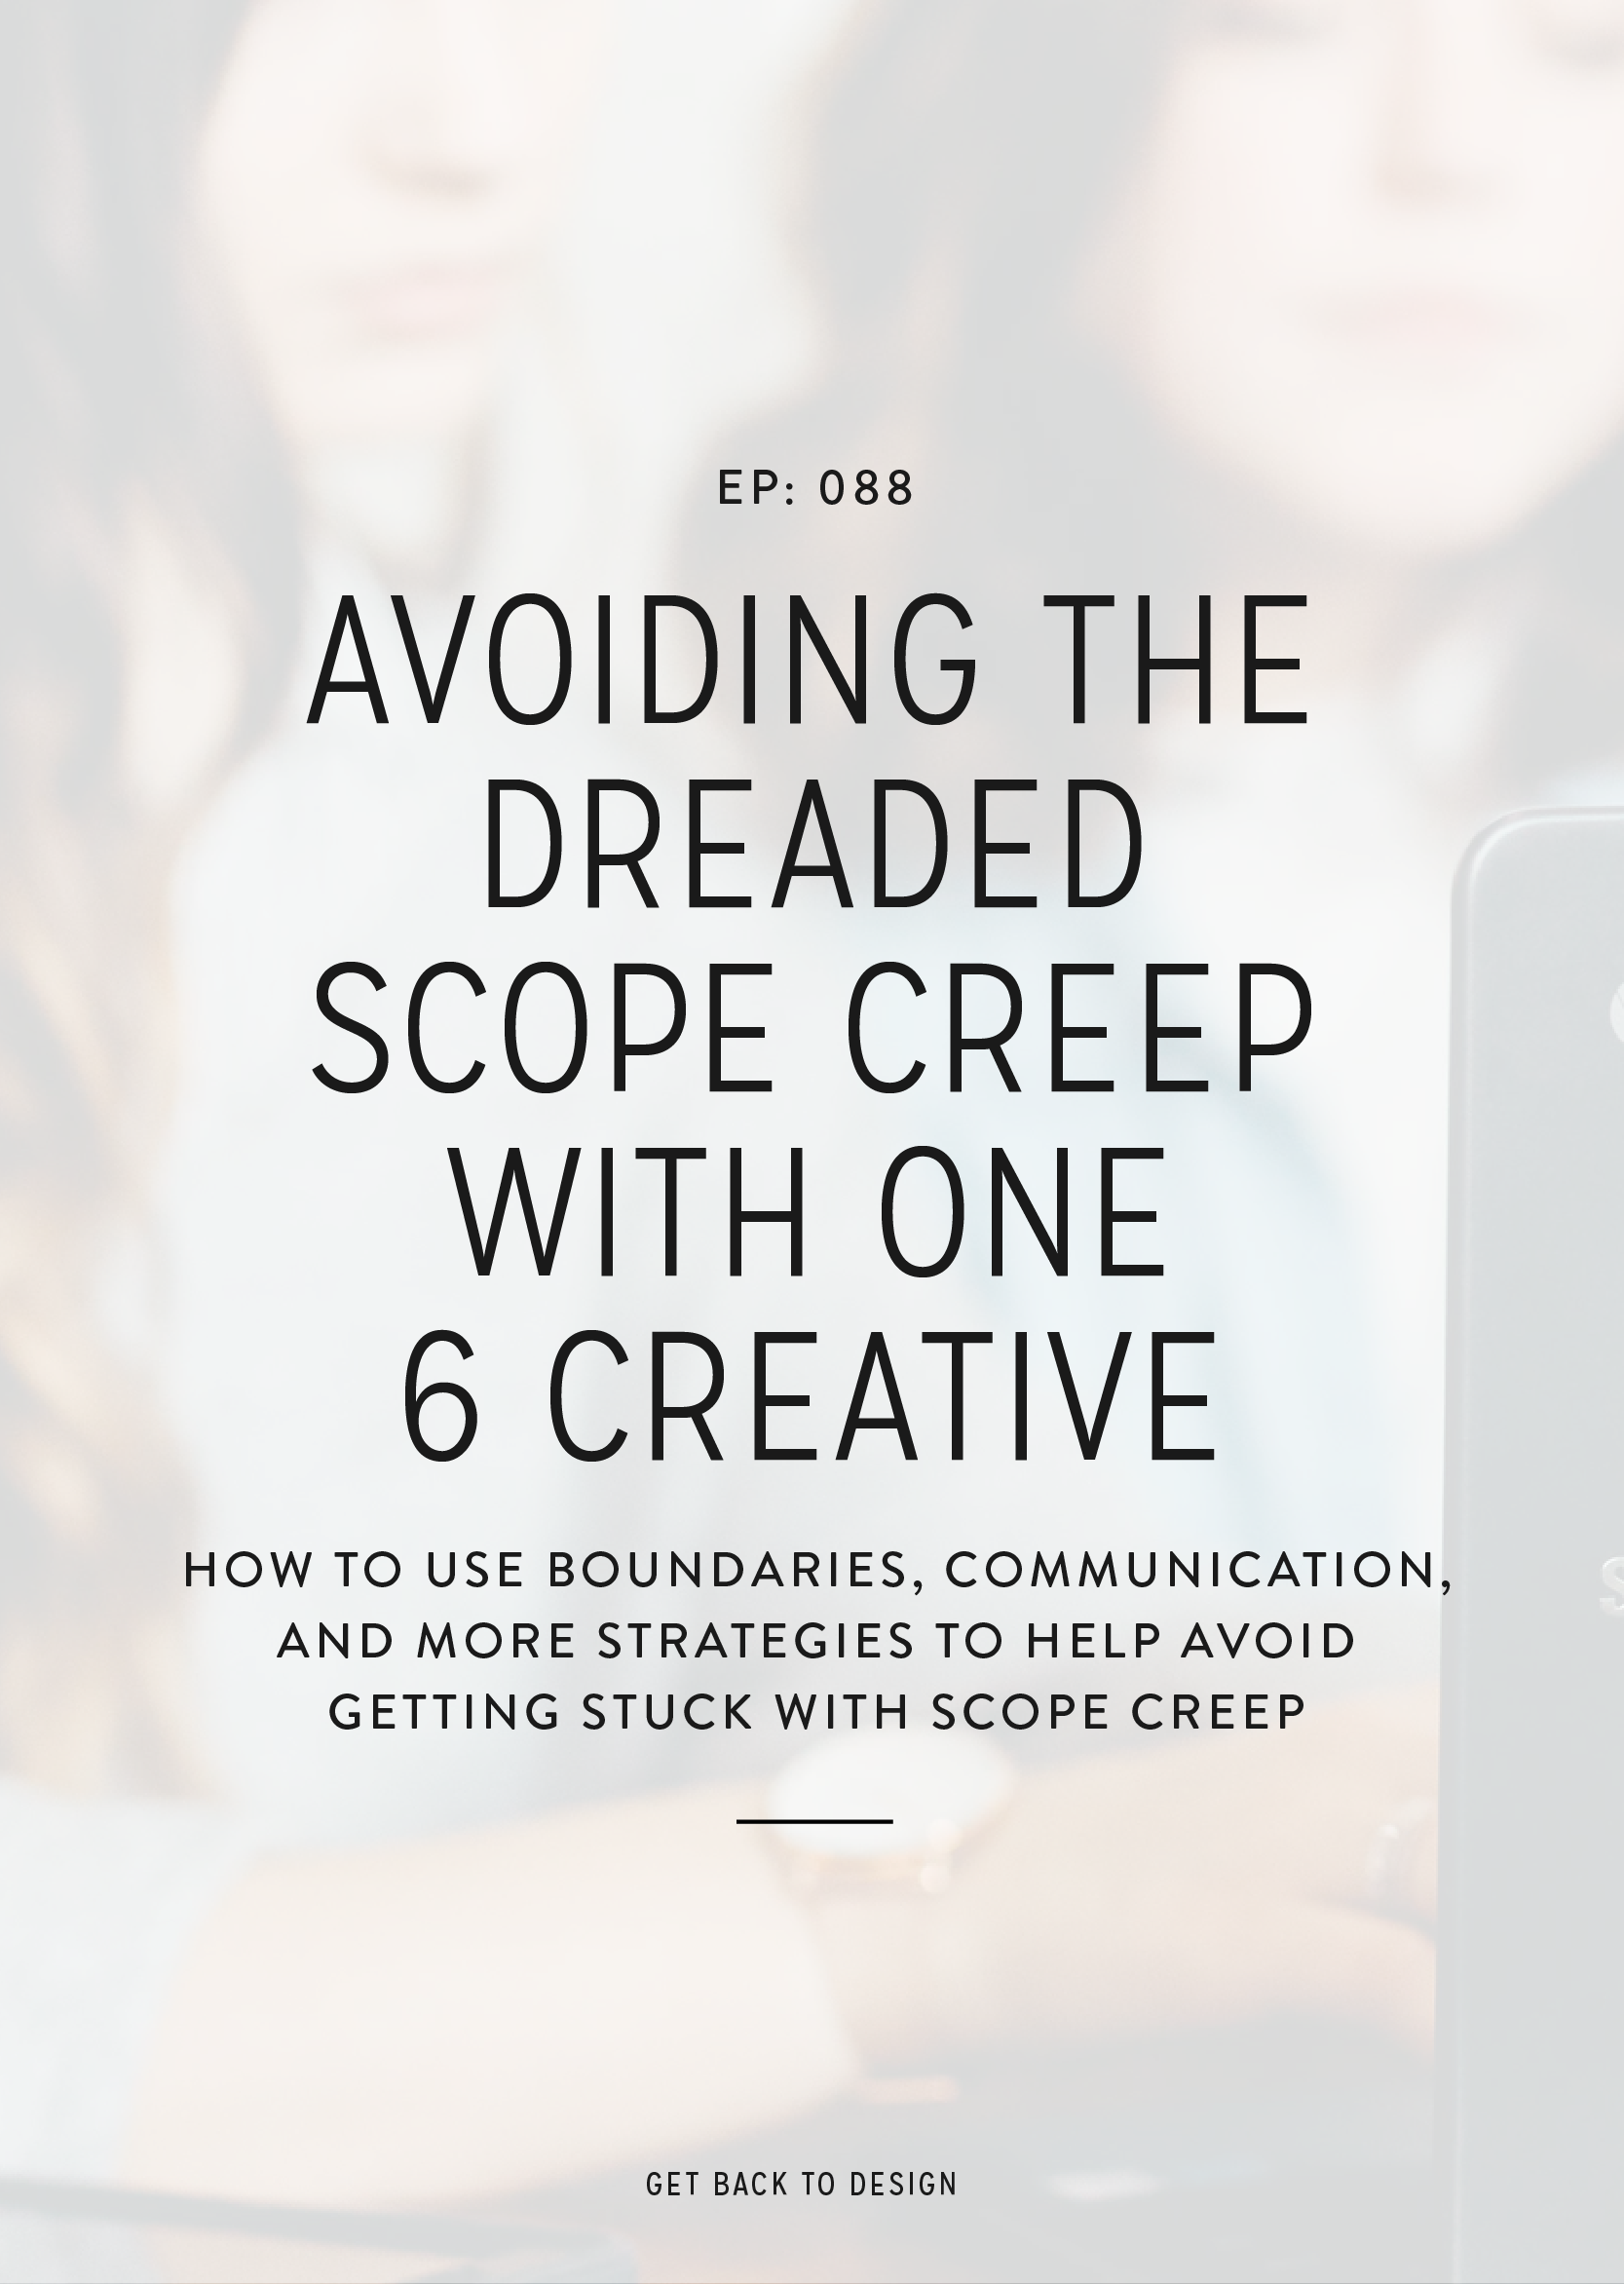 This week we're chatting with Gigi from One 6 Creative all about how to use your process, boundaries, communication, and more to avoid scope creep.